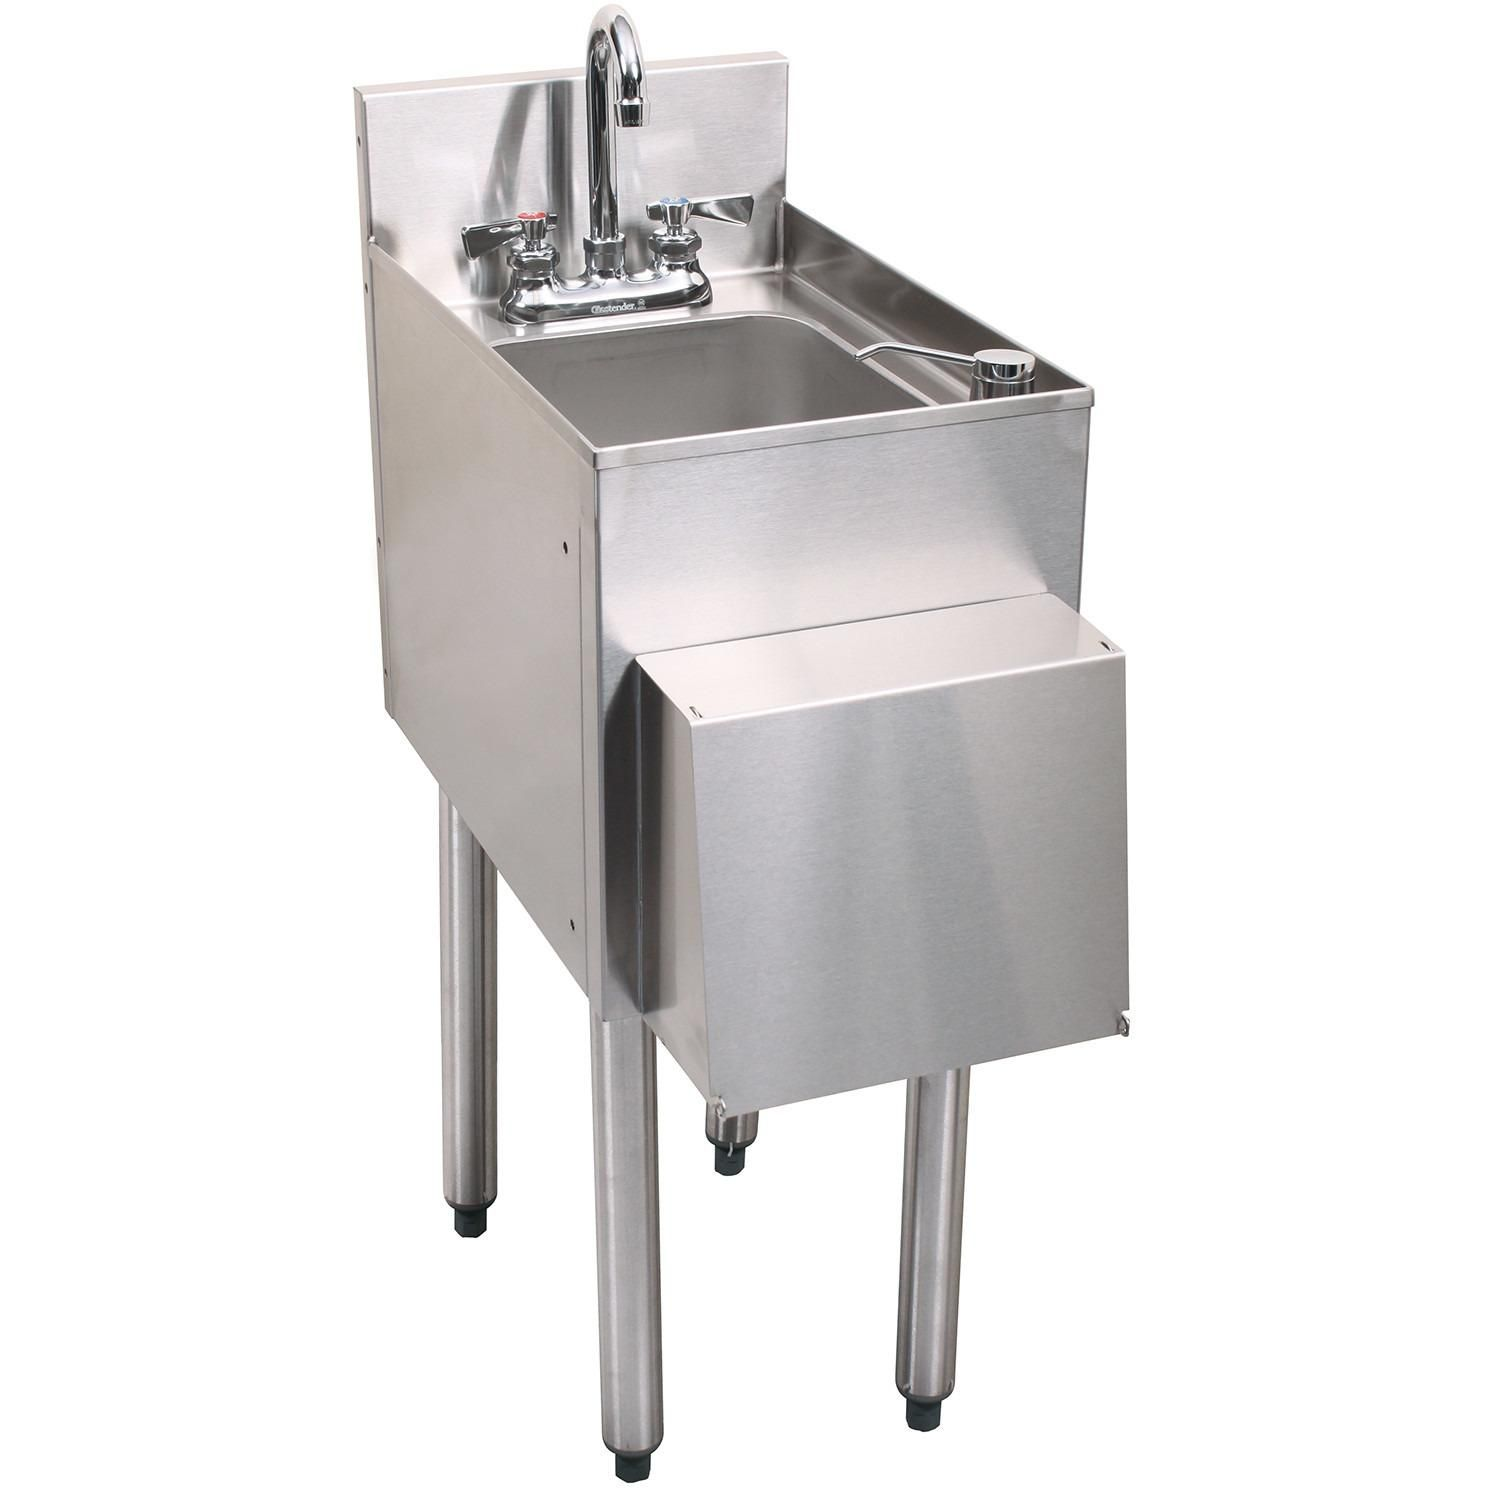 Glastender Stainless Steel C Hsa 12 D 1 Compartment Hand Sink With Images Sink Sink Units Compartment